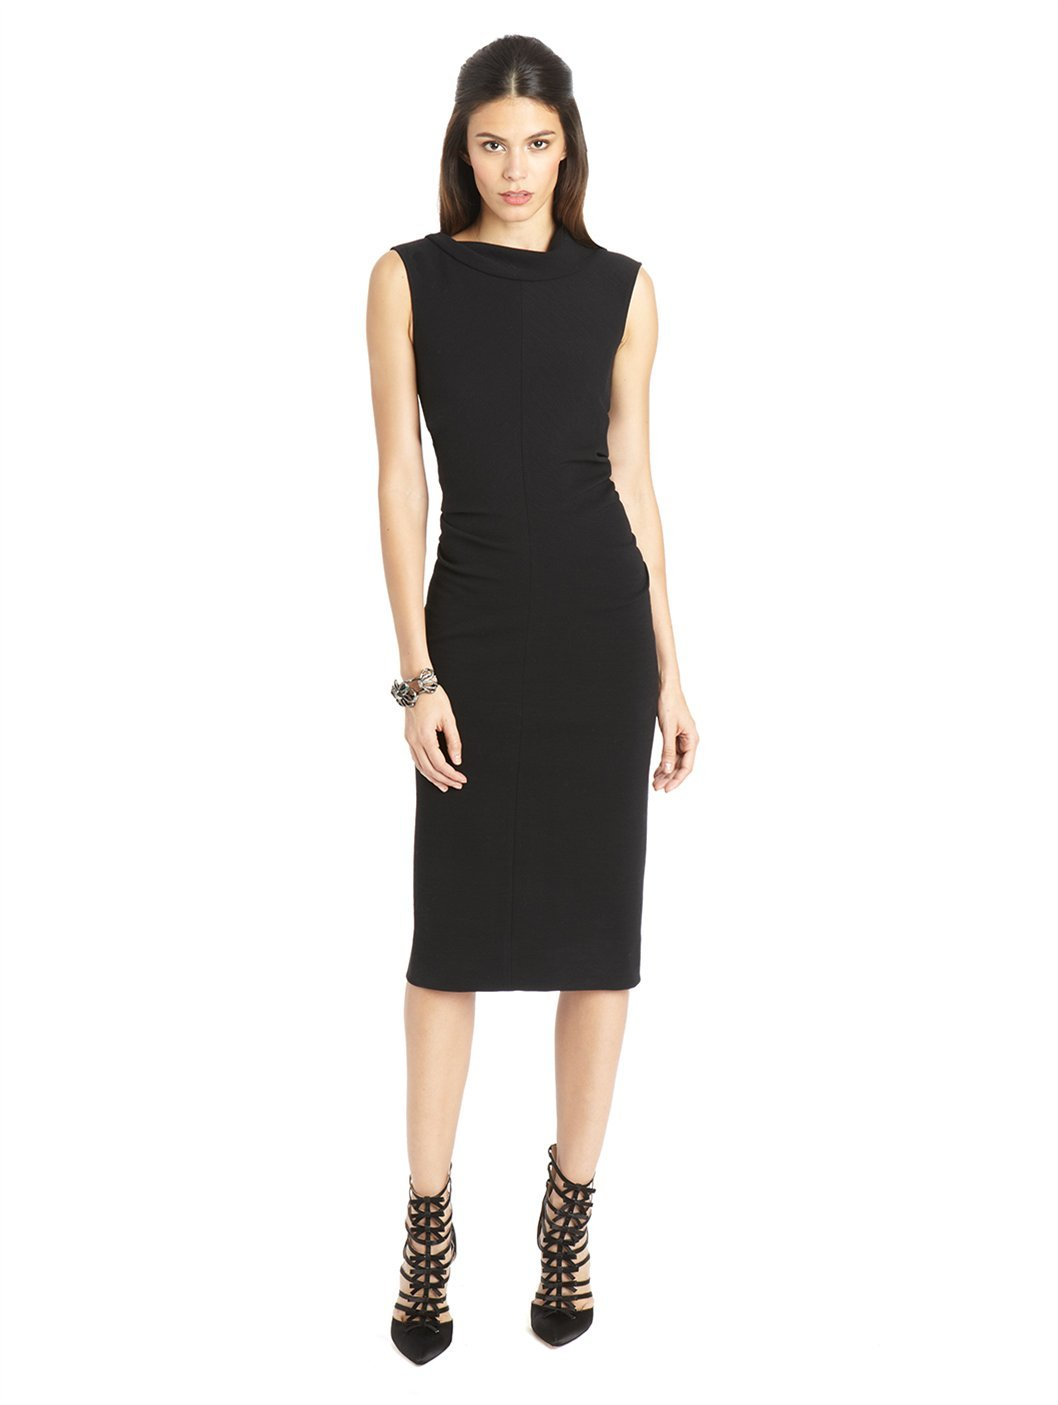 Oscar De La Renta Black Dress